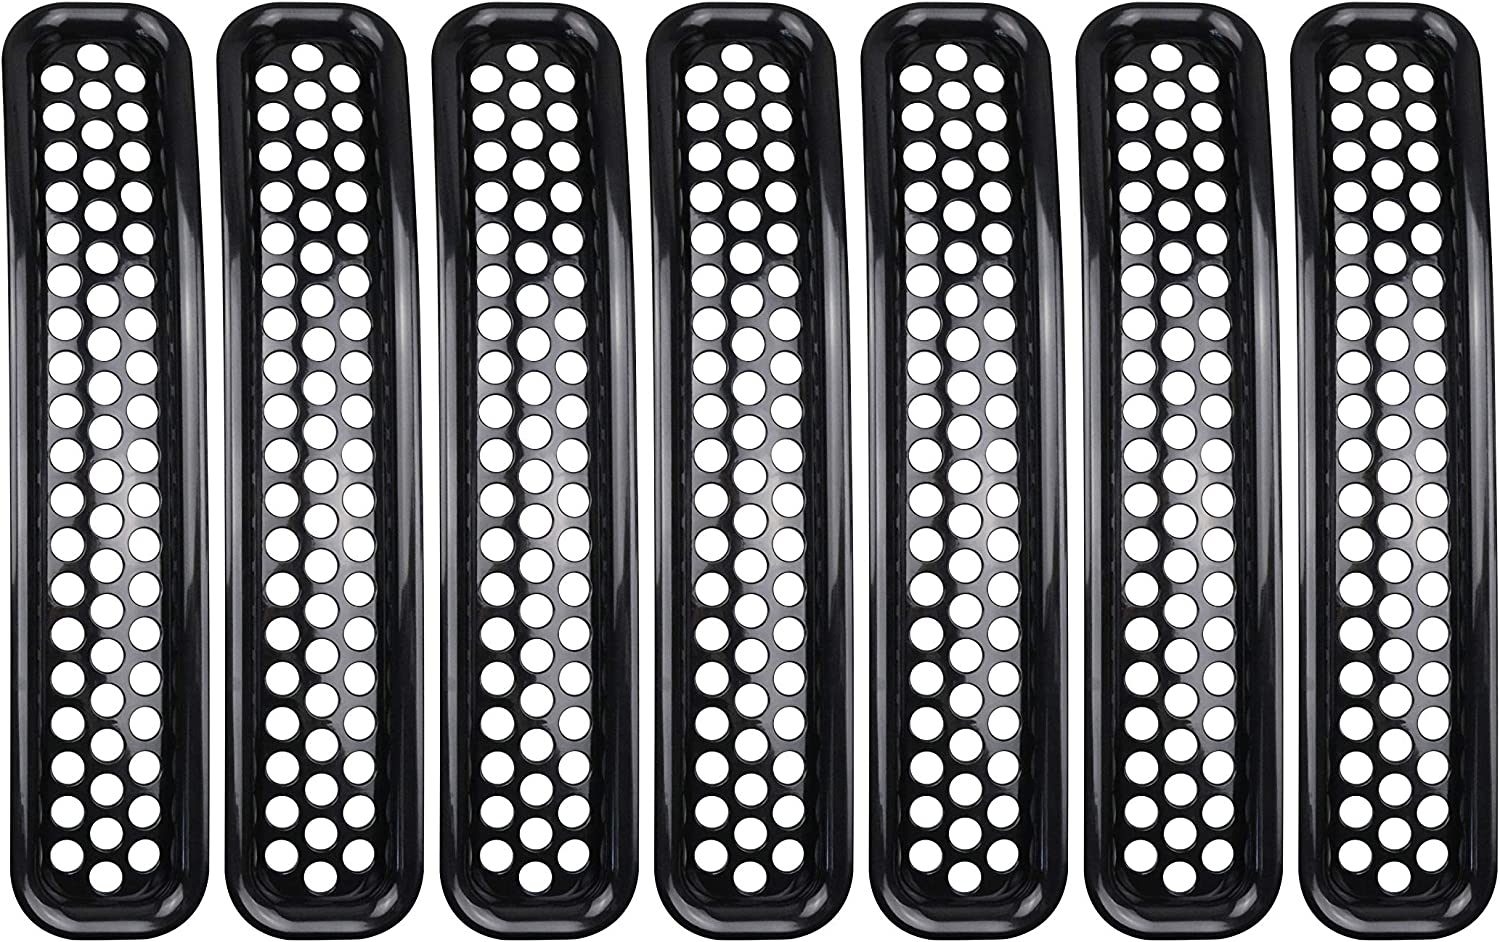 BESTAOO 7pcs Jeep TJ Front Grille Inserts Trim Honeycomb Mesh Inserts for 1997-2006 Jeep Wrangler tj /& Unlimited Black